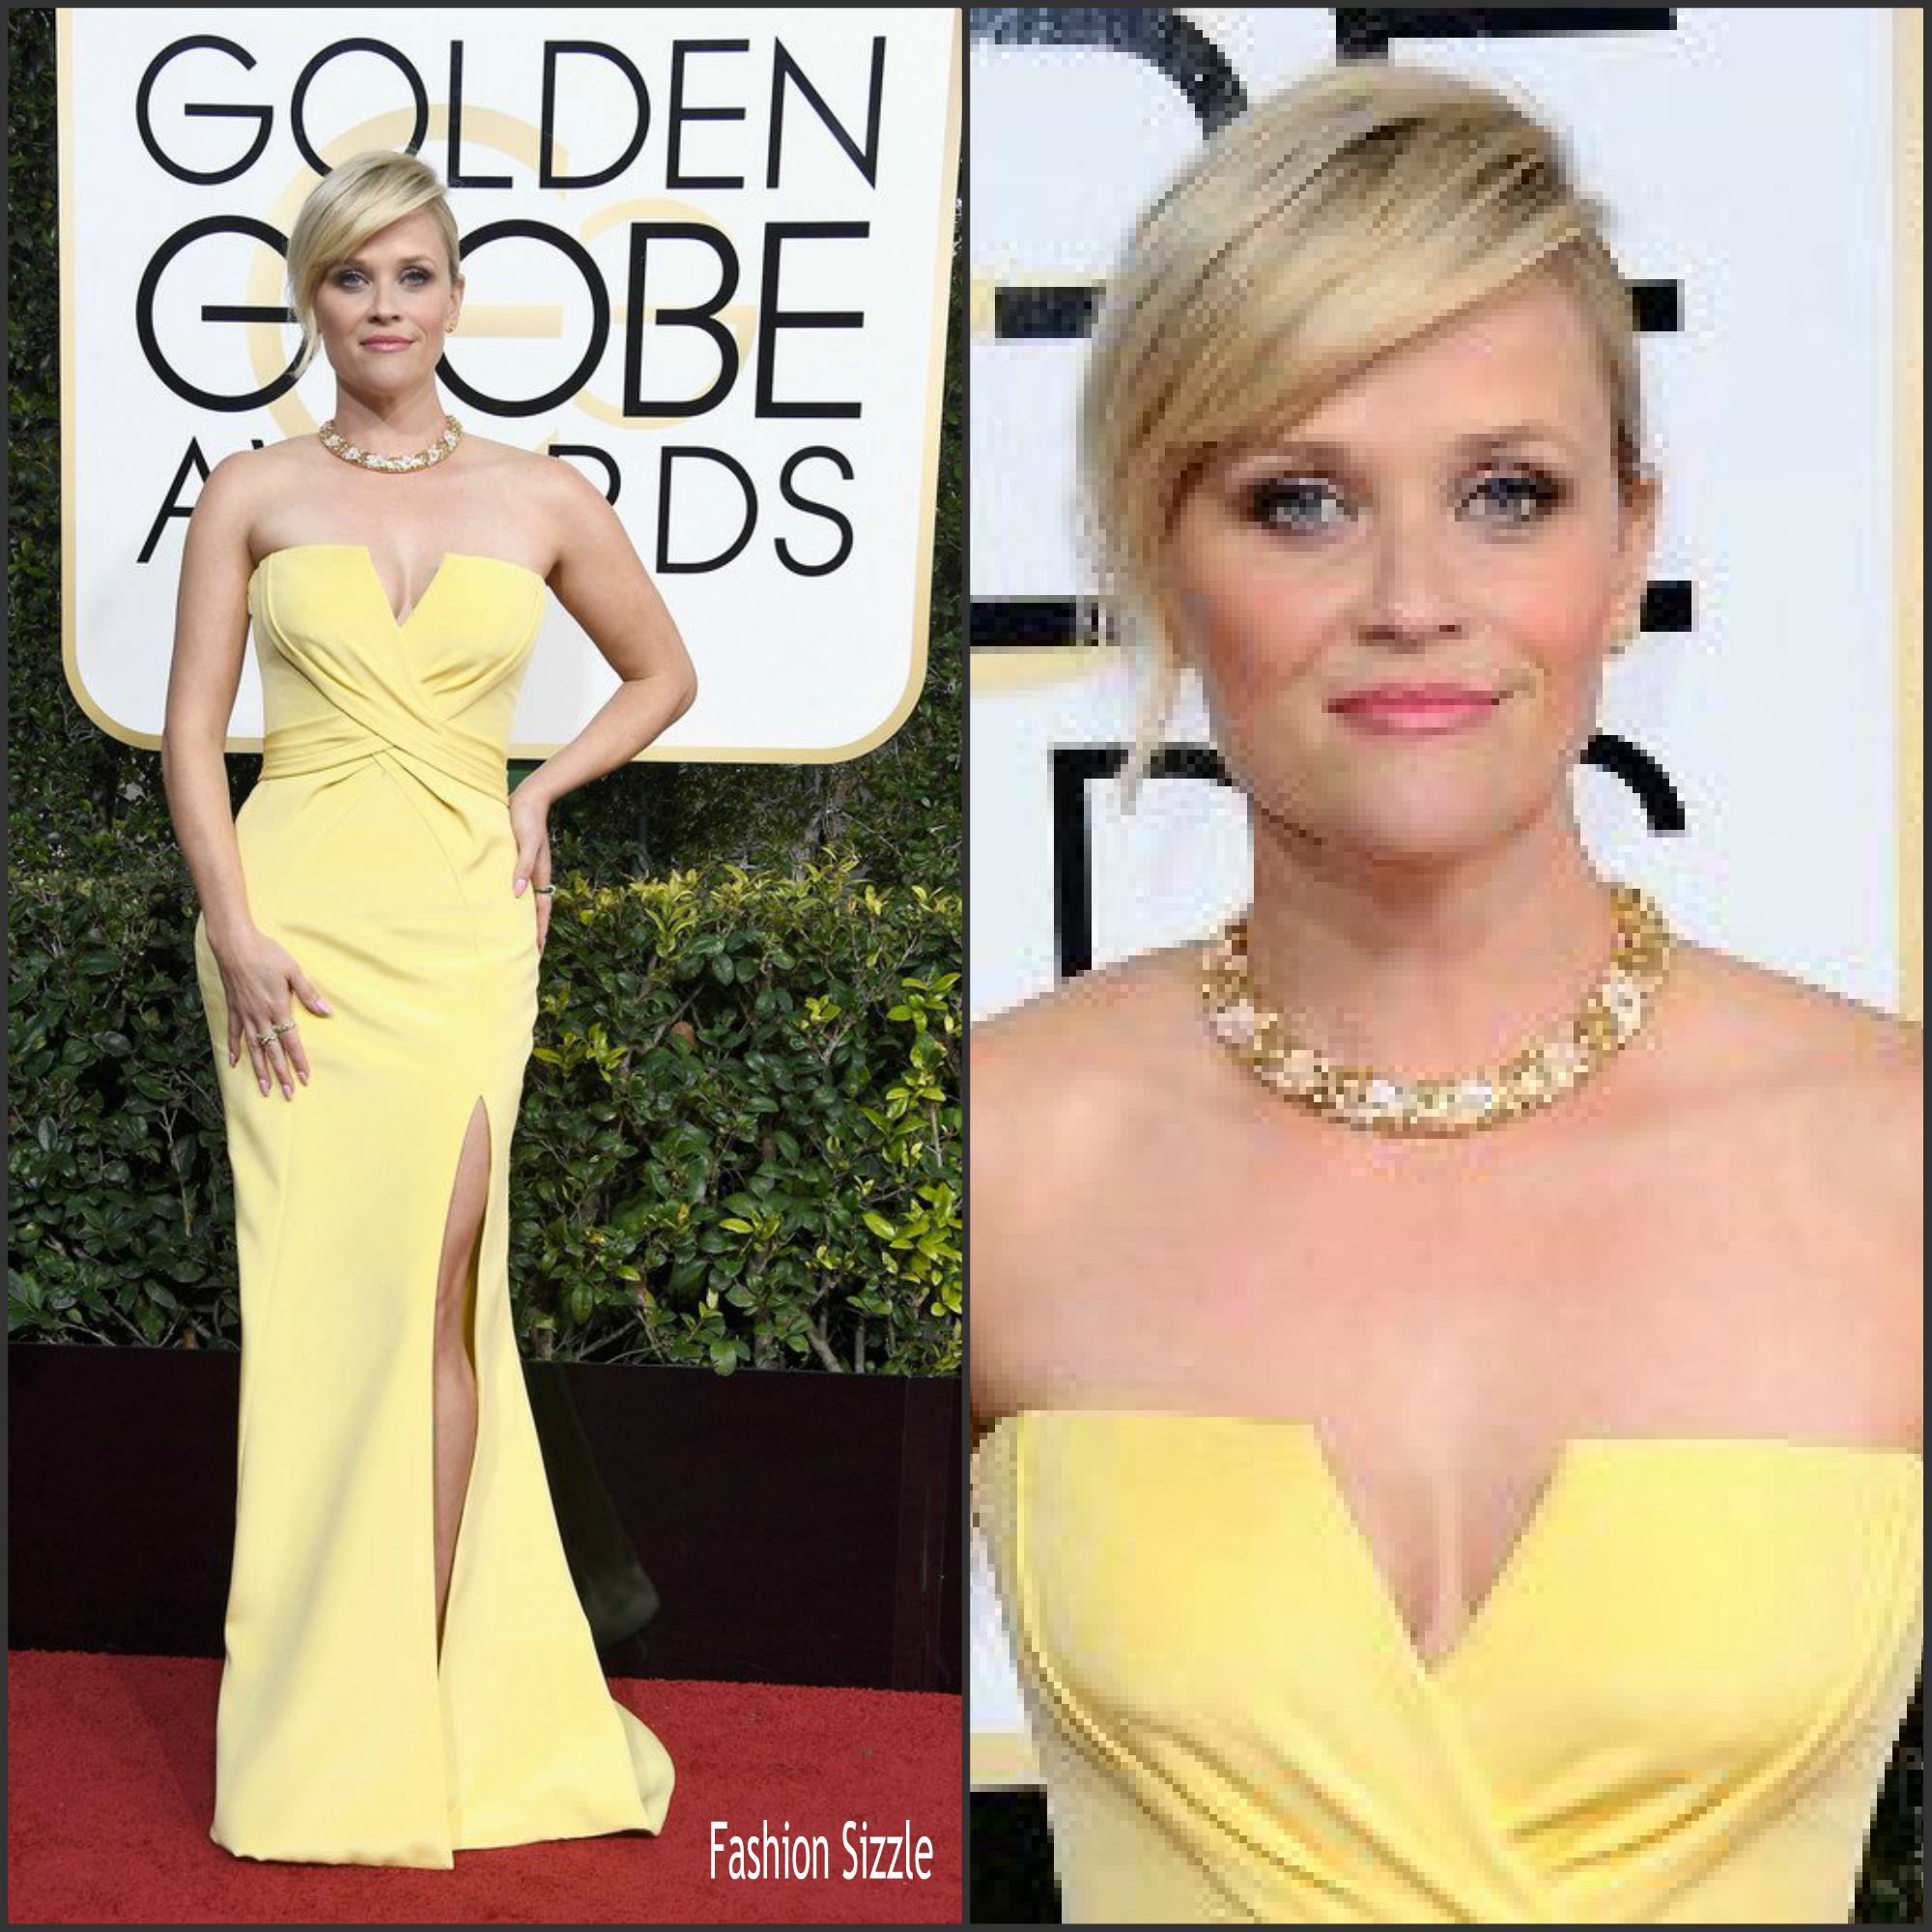 reese-witherspoon-in-atelier-versace-at-the-2017-golden-globe-awards